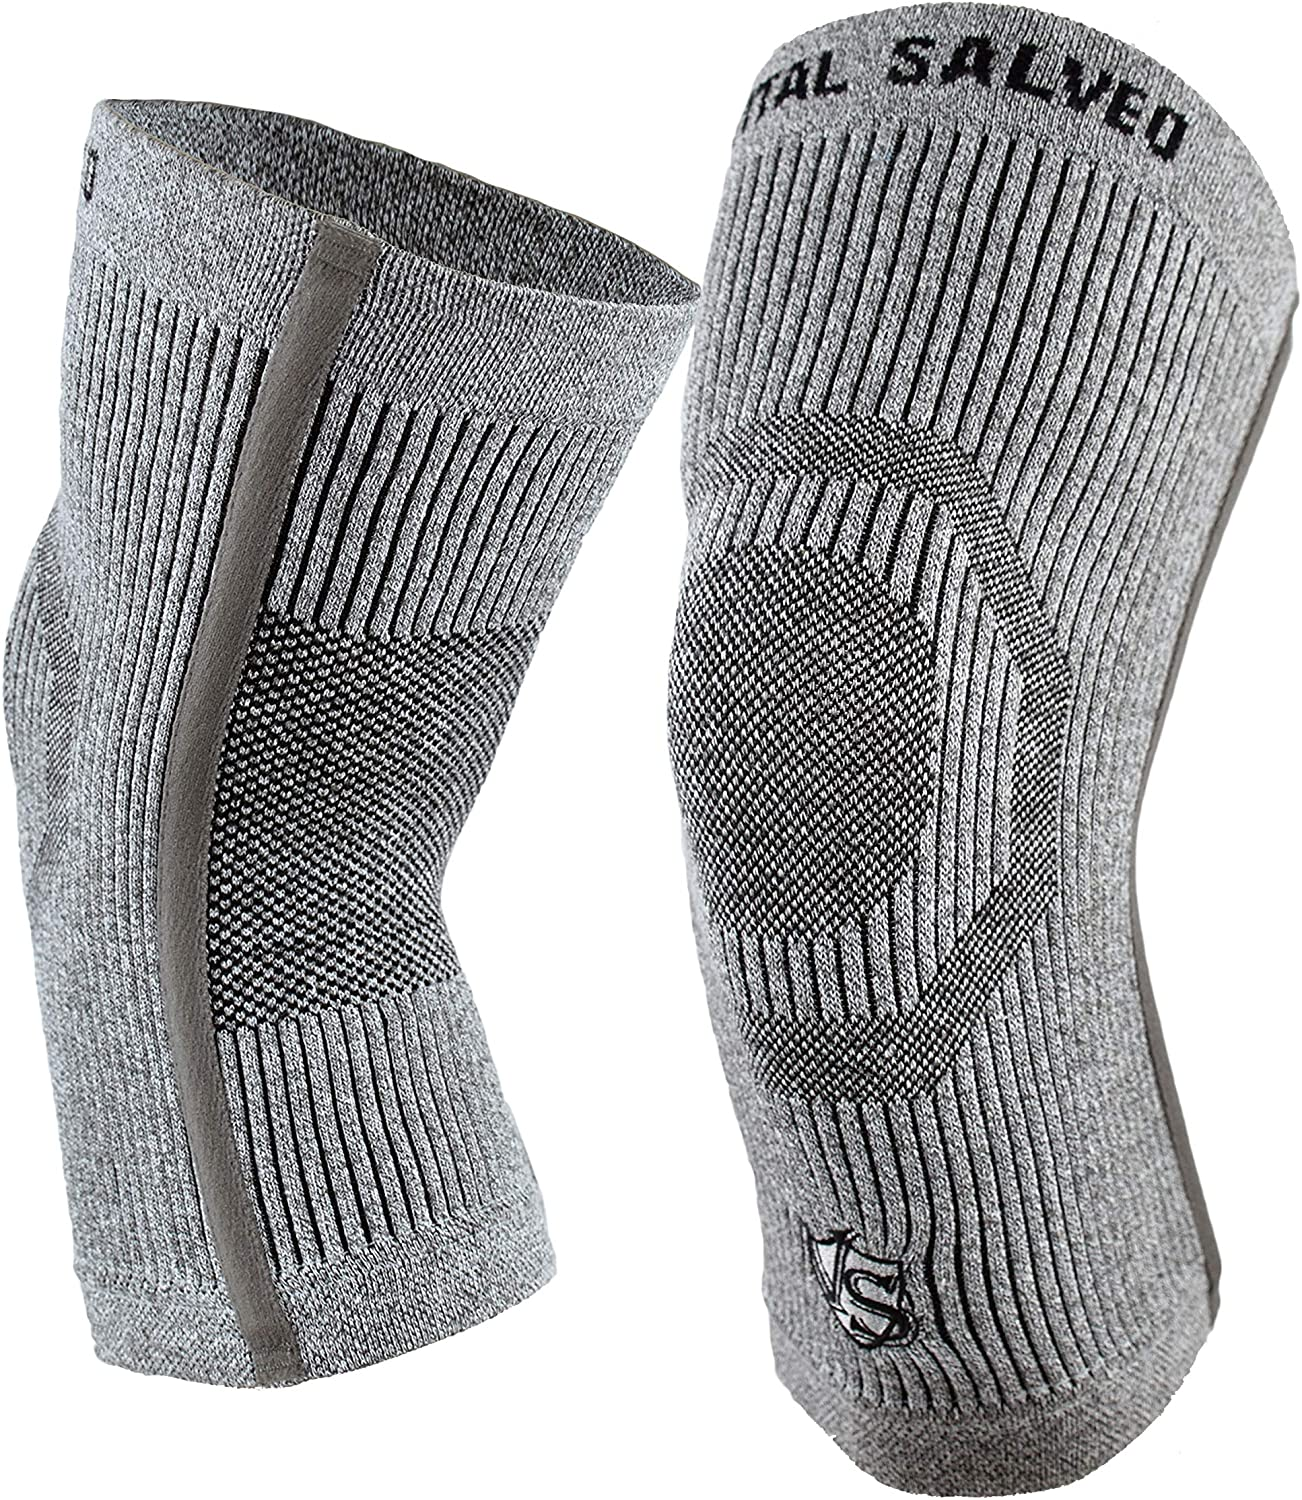 Vital Salveo-Compression Recovery Knee Sleeves/Braces S-Support, Ideal for Sports and Daily Wear, Pain Relief, Protects Joint -Light Grey (1 Pair)- XXXL